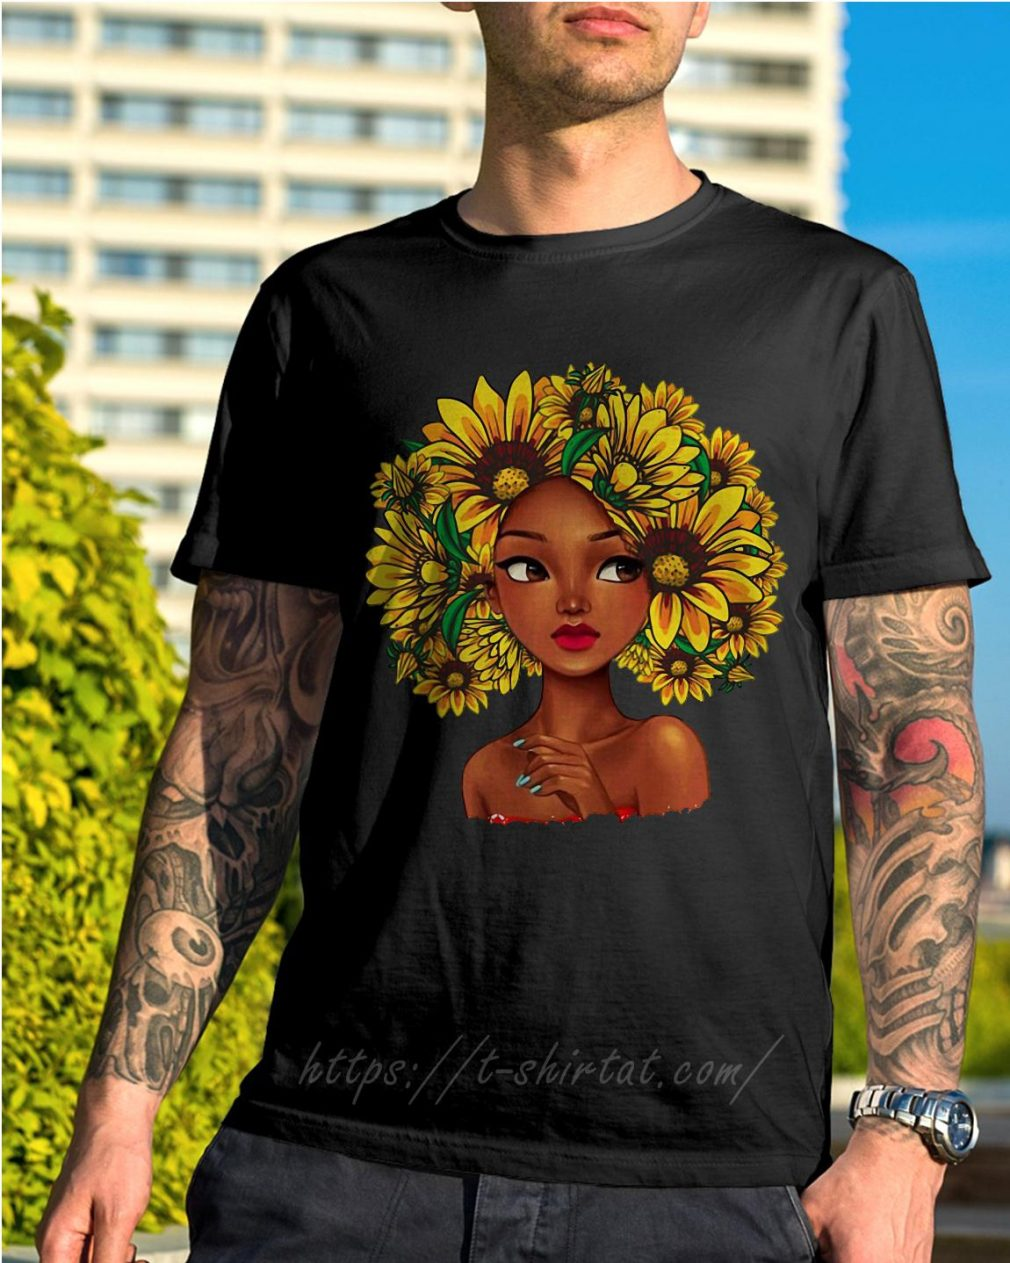 Black girl with sunflowers natural hair shirt